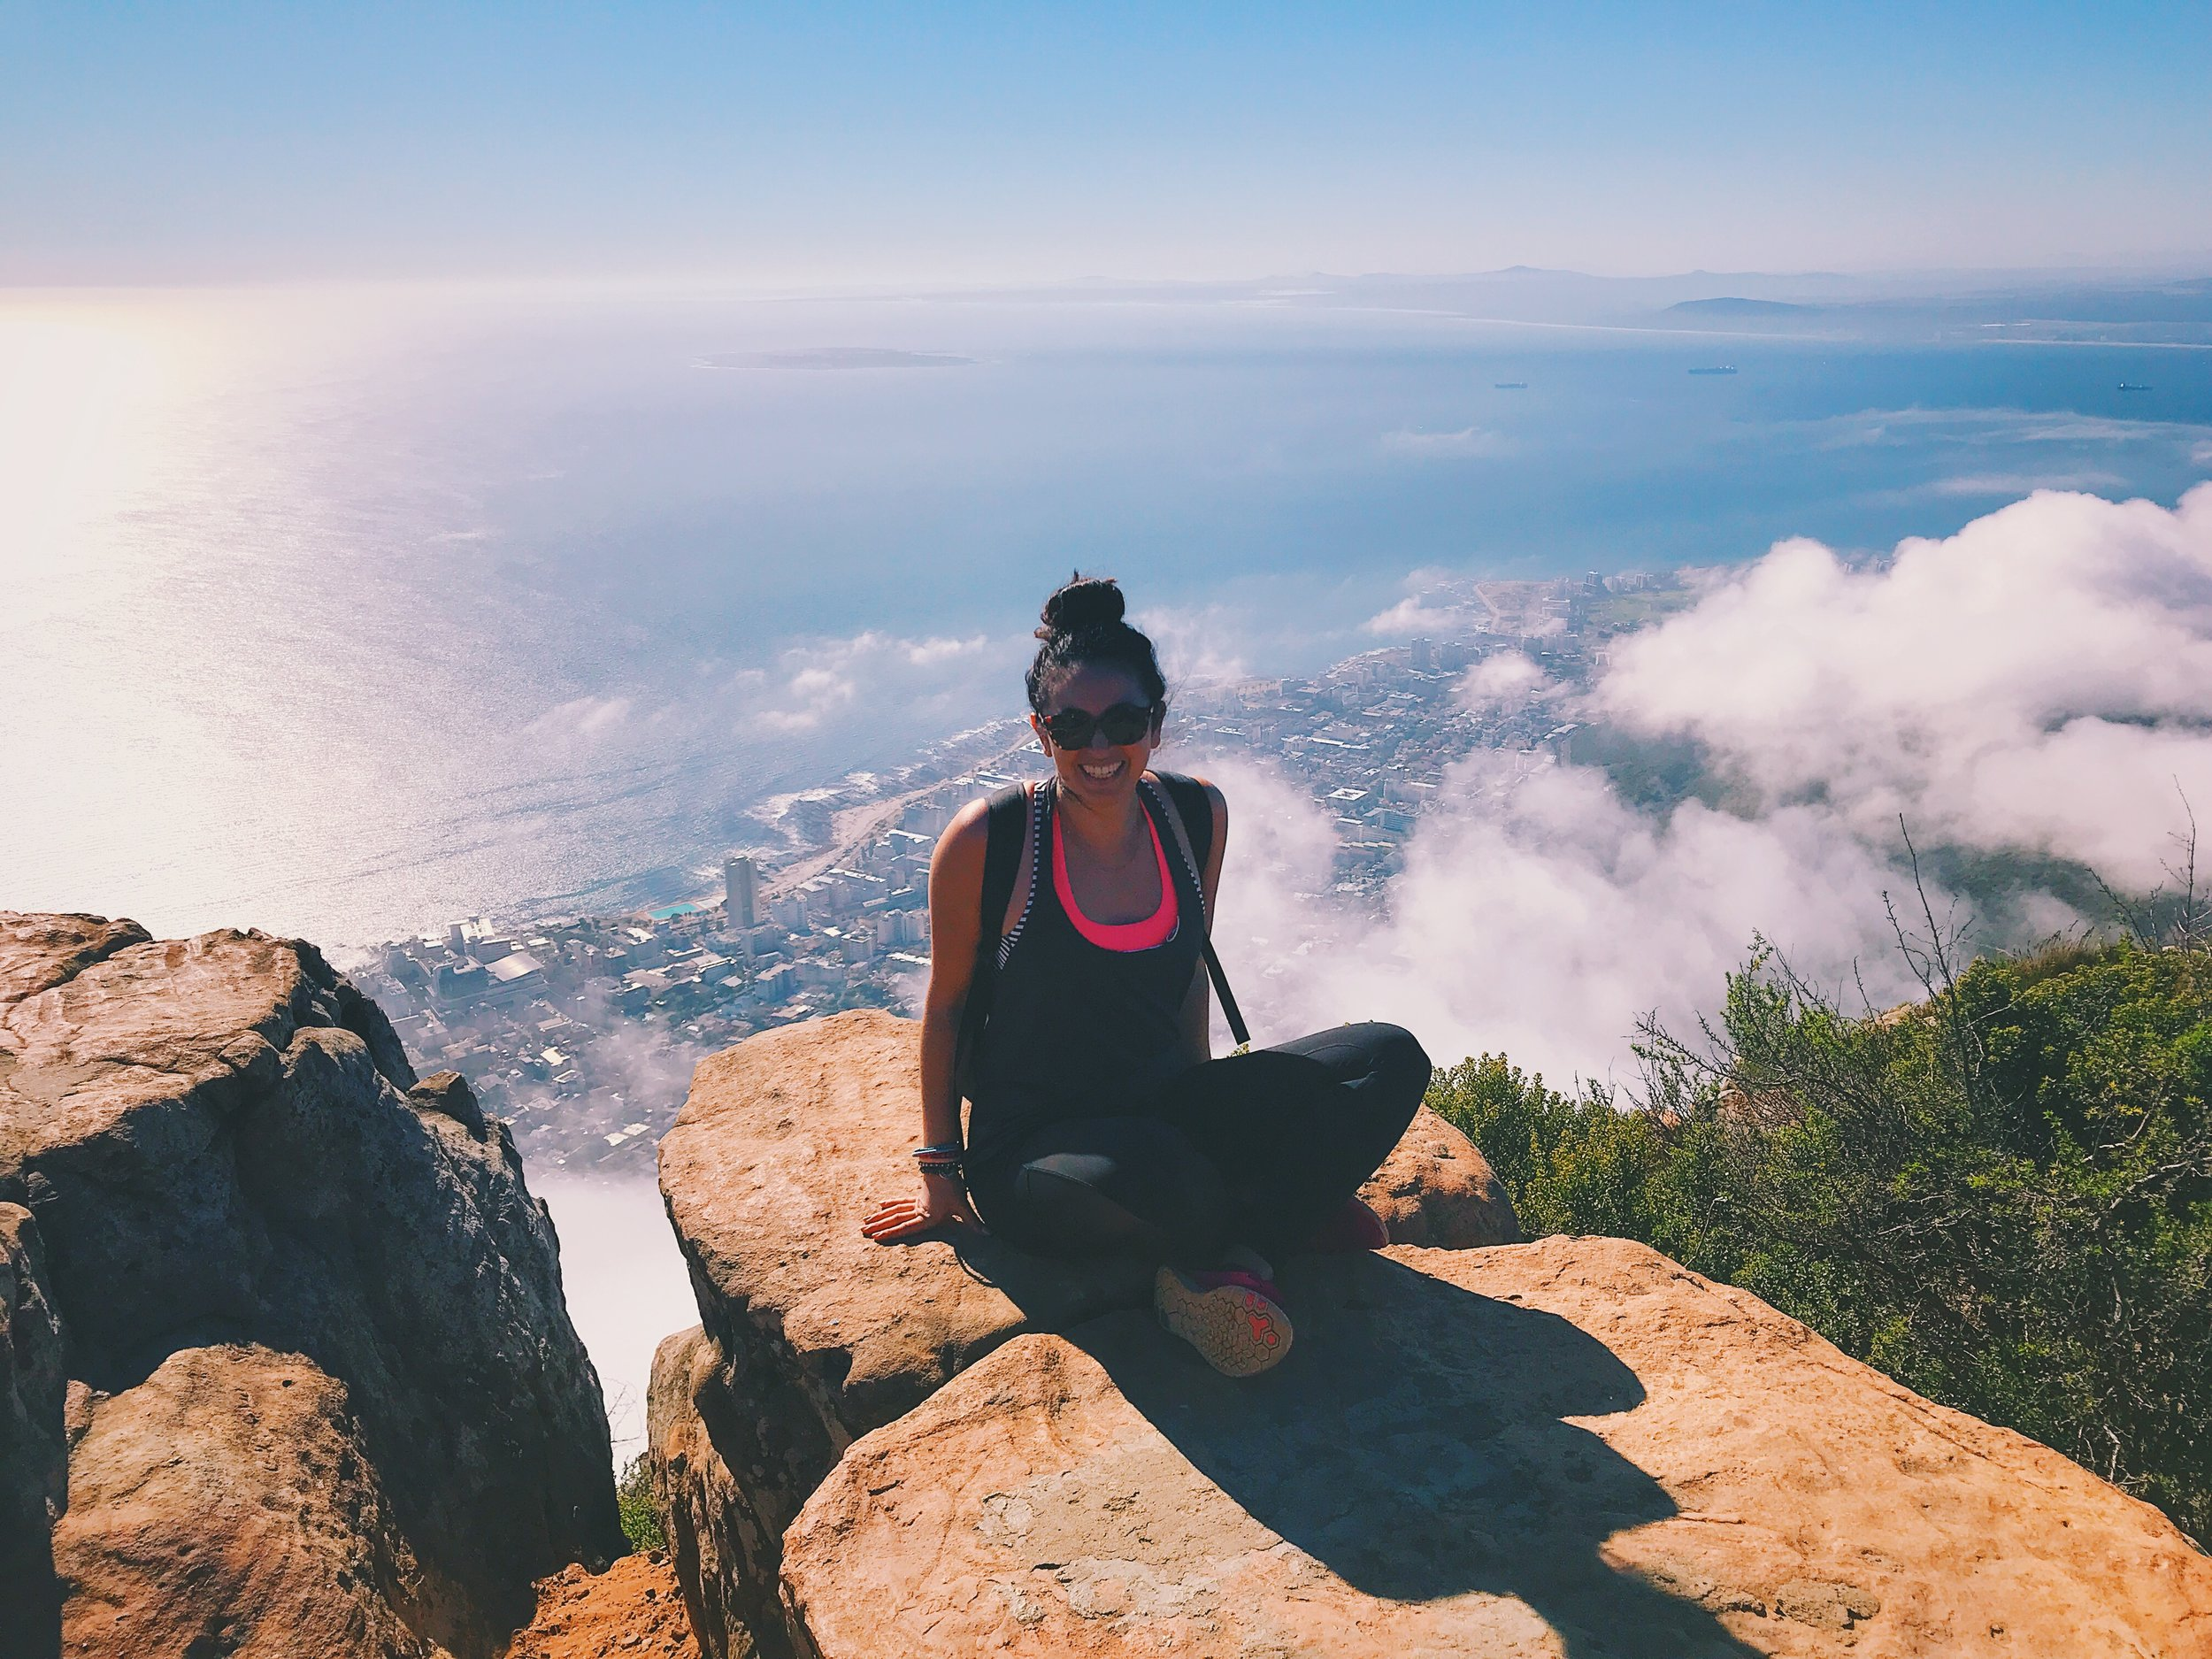 At the top of Lion's Head Mountain in Cape Town... perhaps not the safest meditation spot.